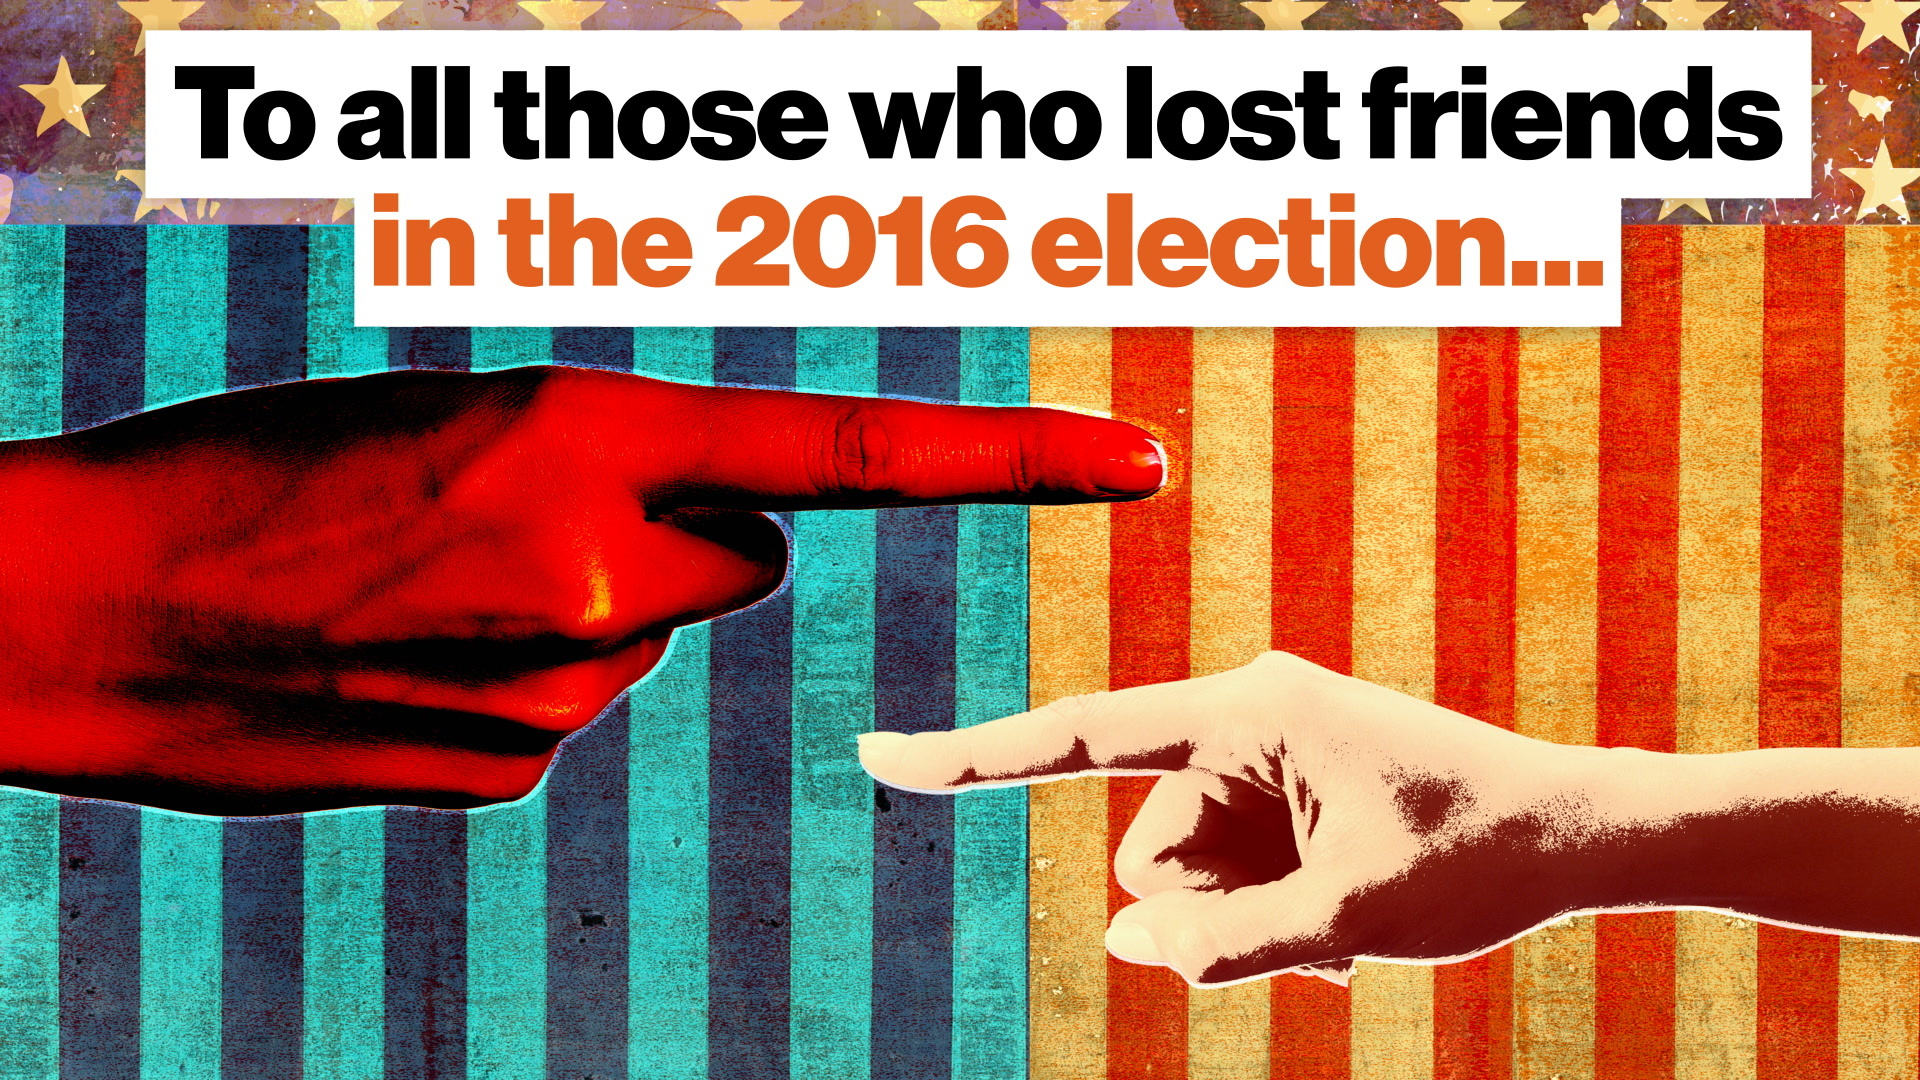 If you lost friends in the 2016 election, watch this